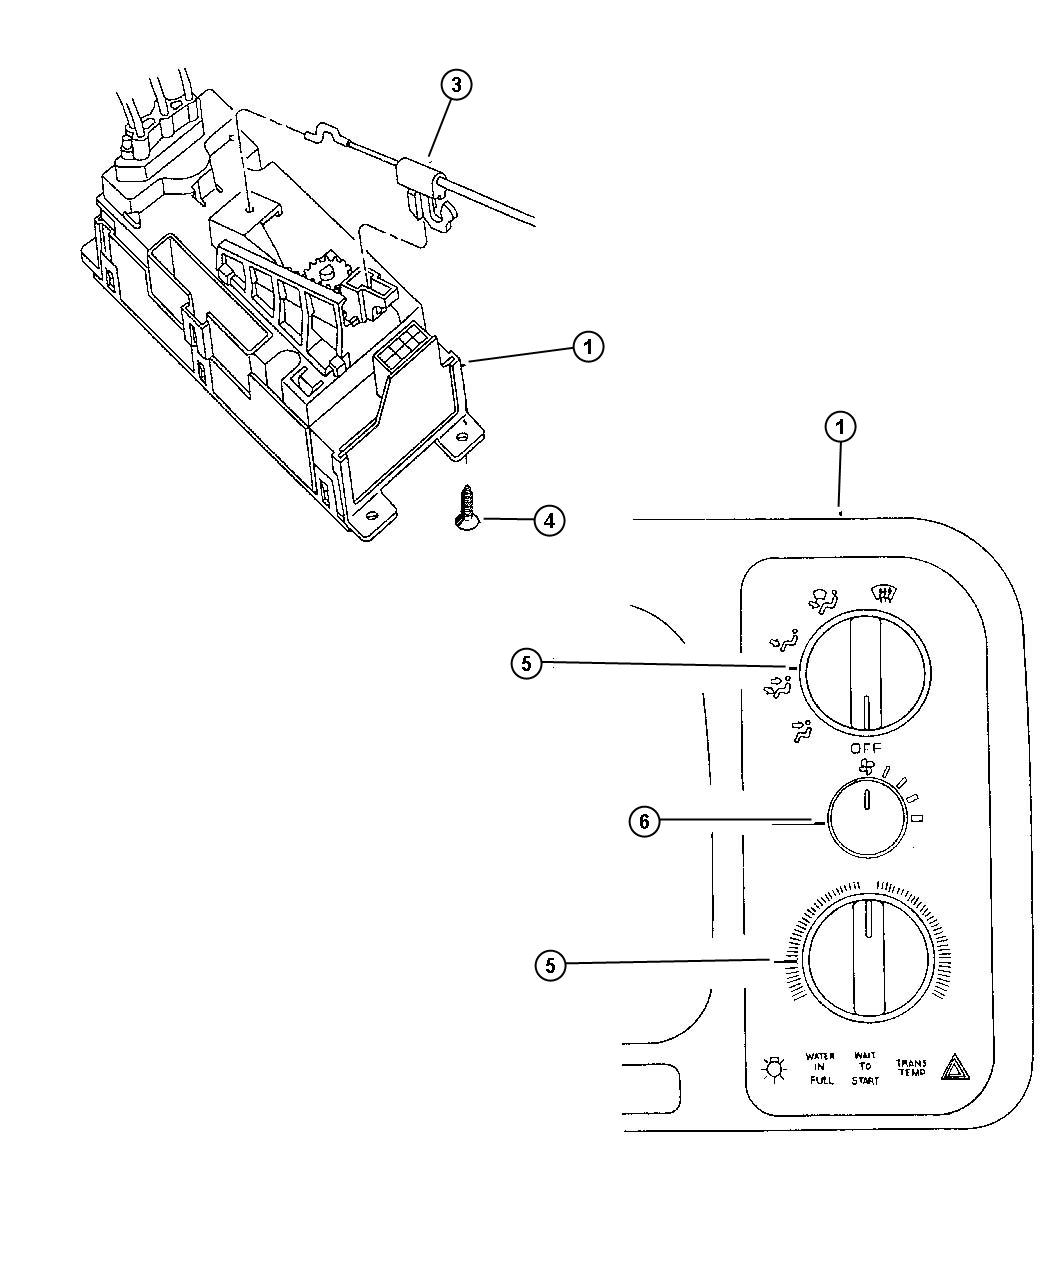 [DIAGRAM] 1998 Dodge Ram 1500 Heater Wiring Diagram FULL